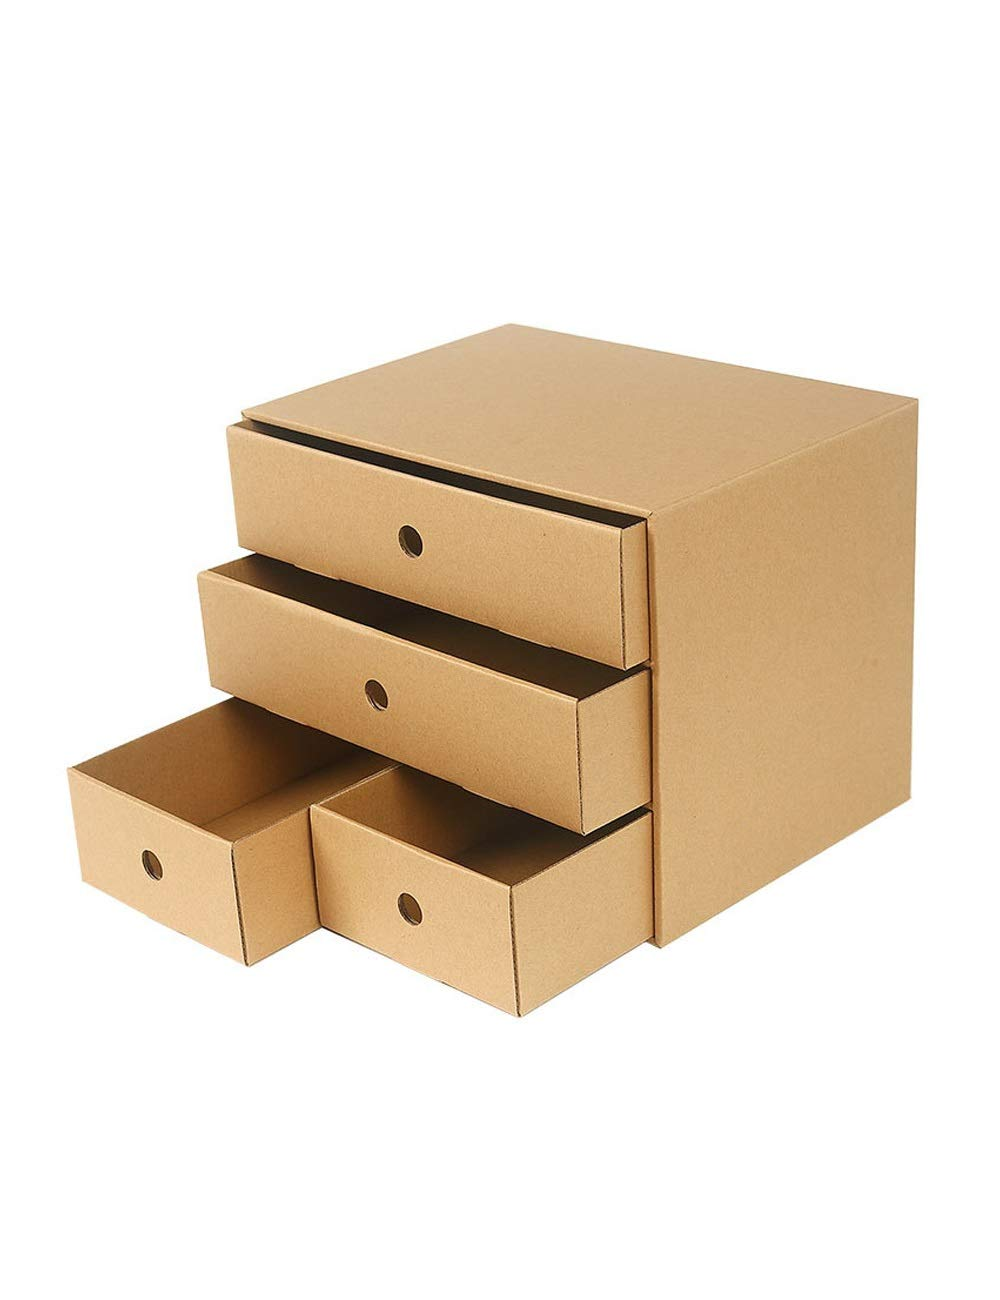 File Cabinets Office Desktop Drawer Type File Manager Stationery Cabinet 3 Layers A4 Paper Data Cabinet Storage Box Storage Home Office Furniture by File Cabinets